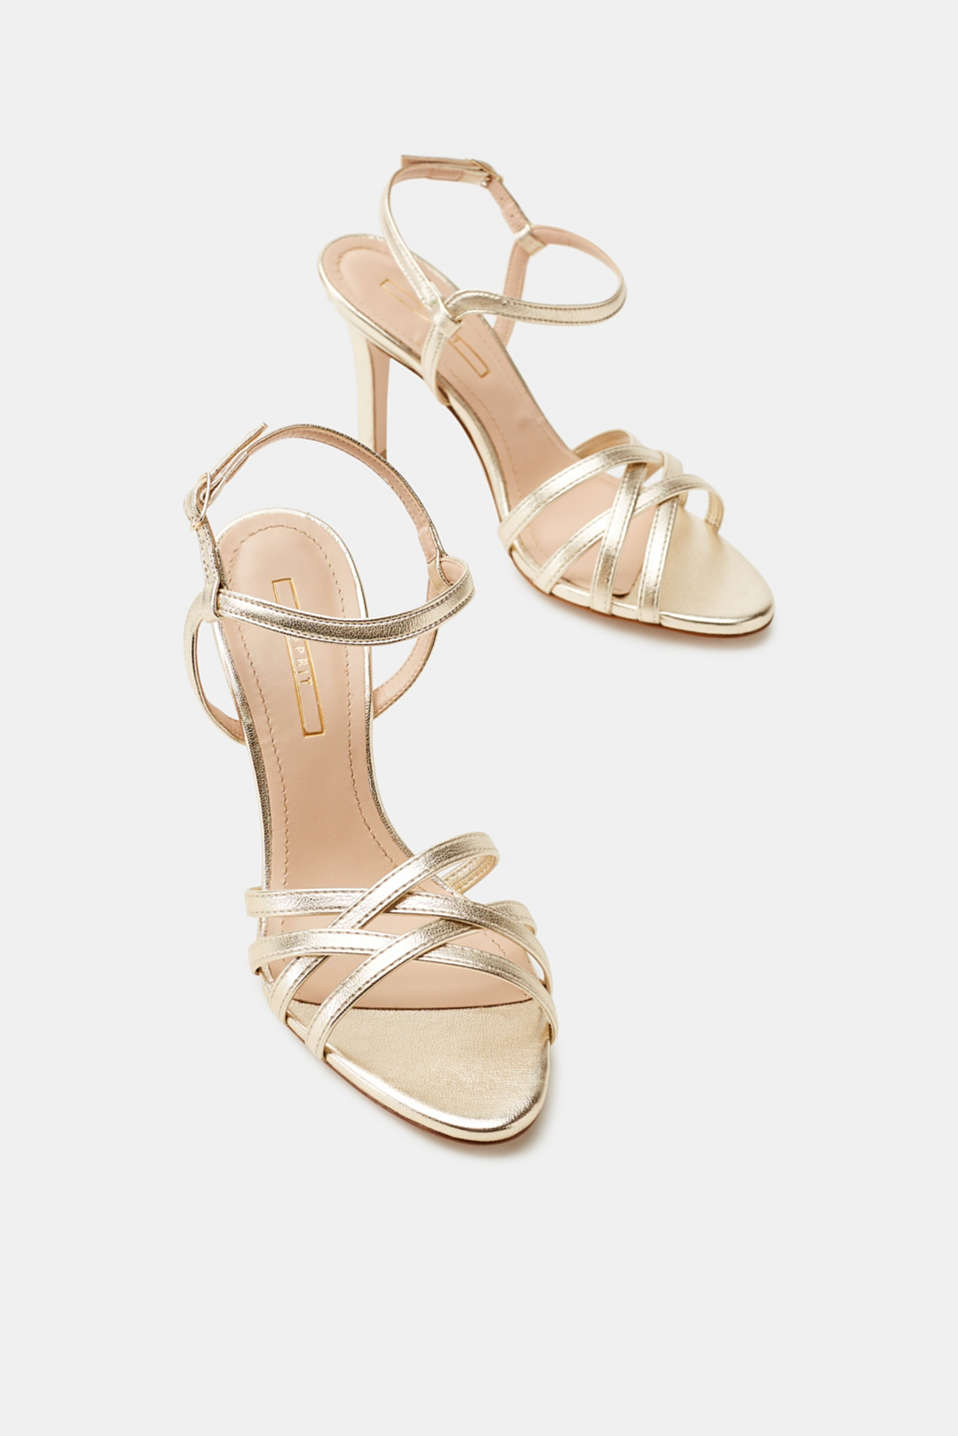 Metallic faux leather sandals